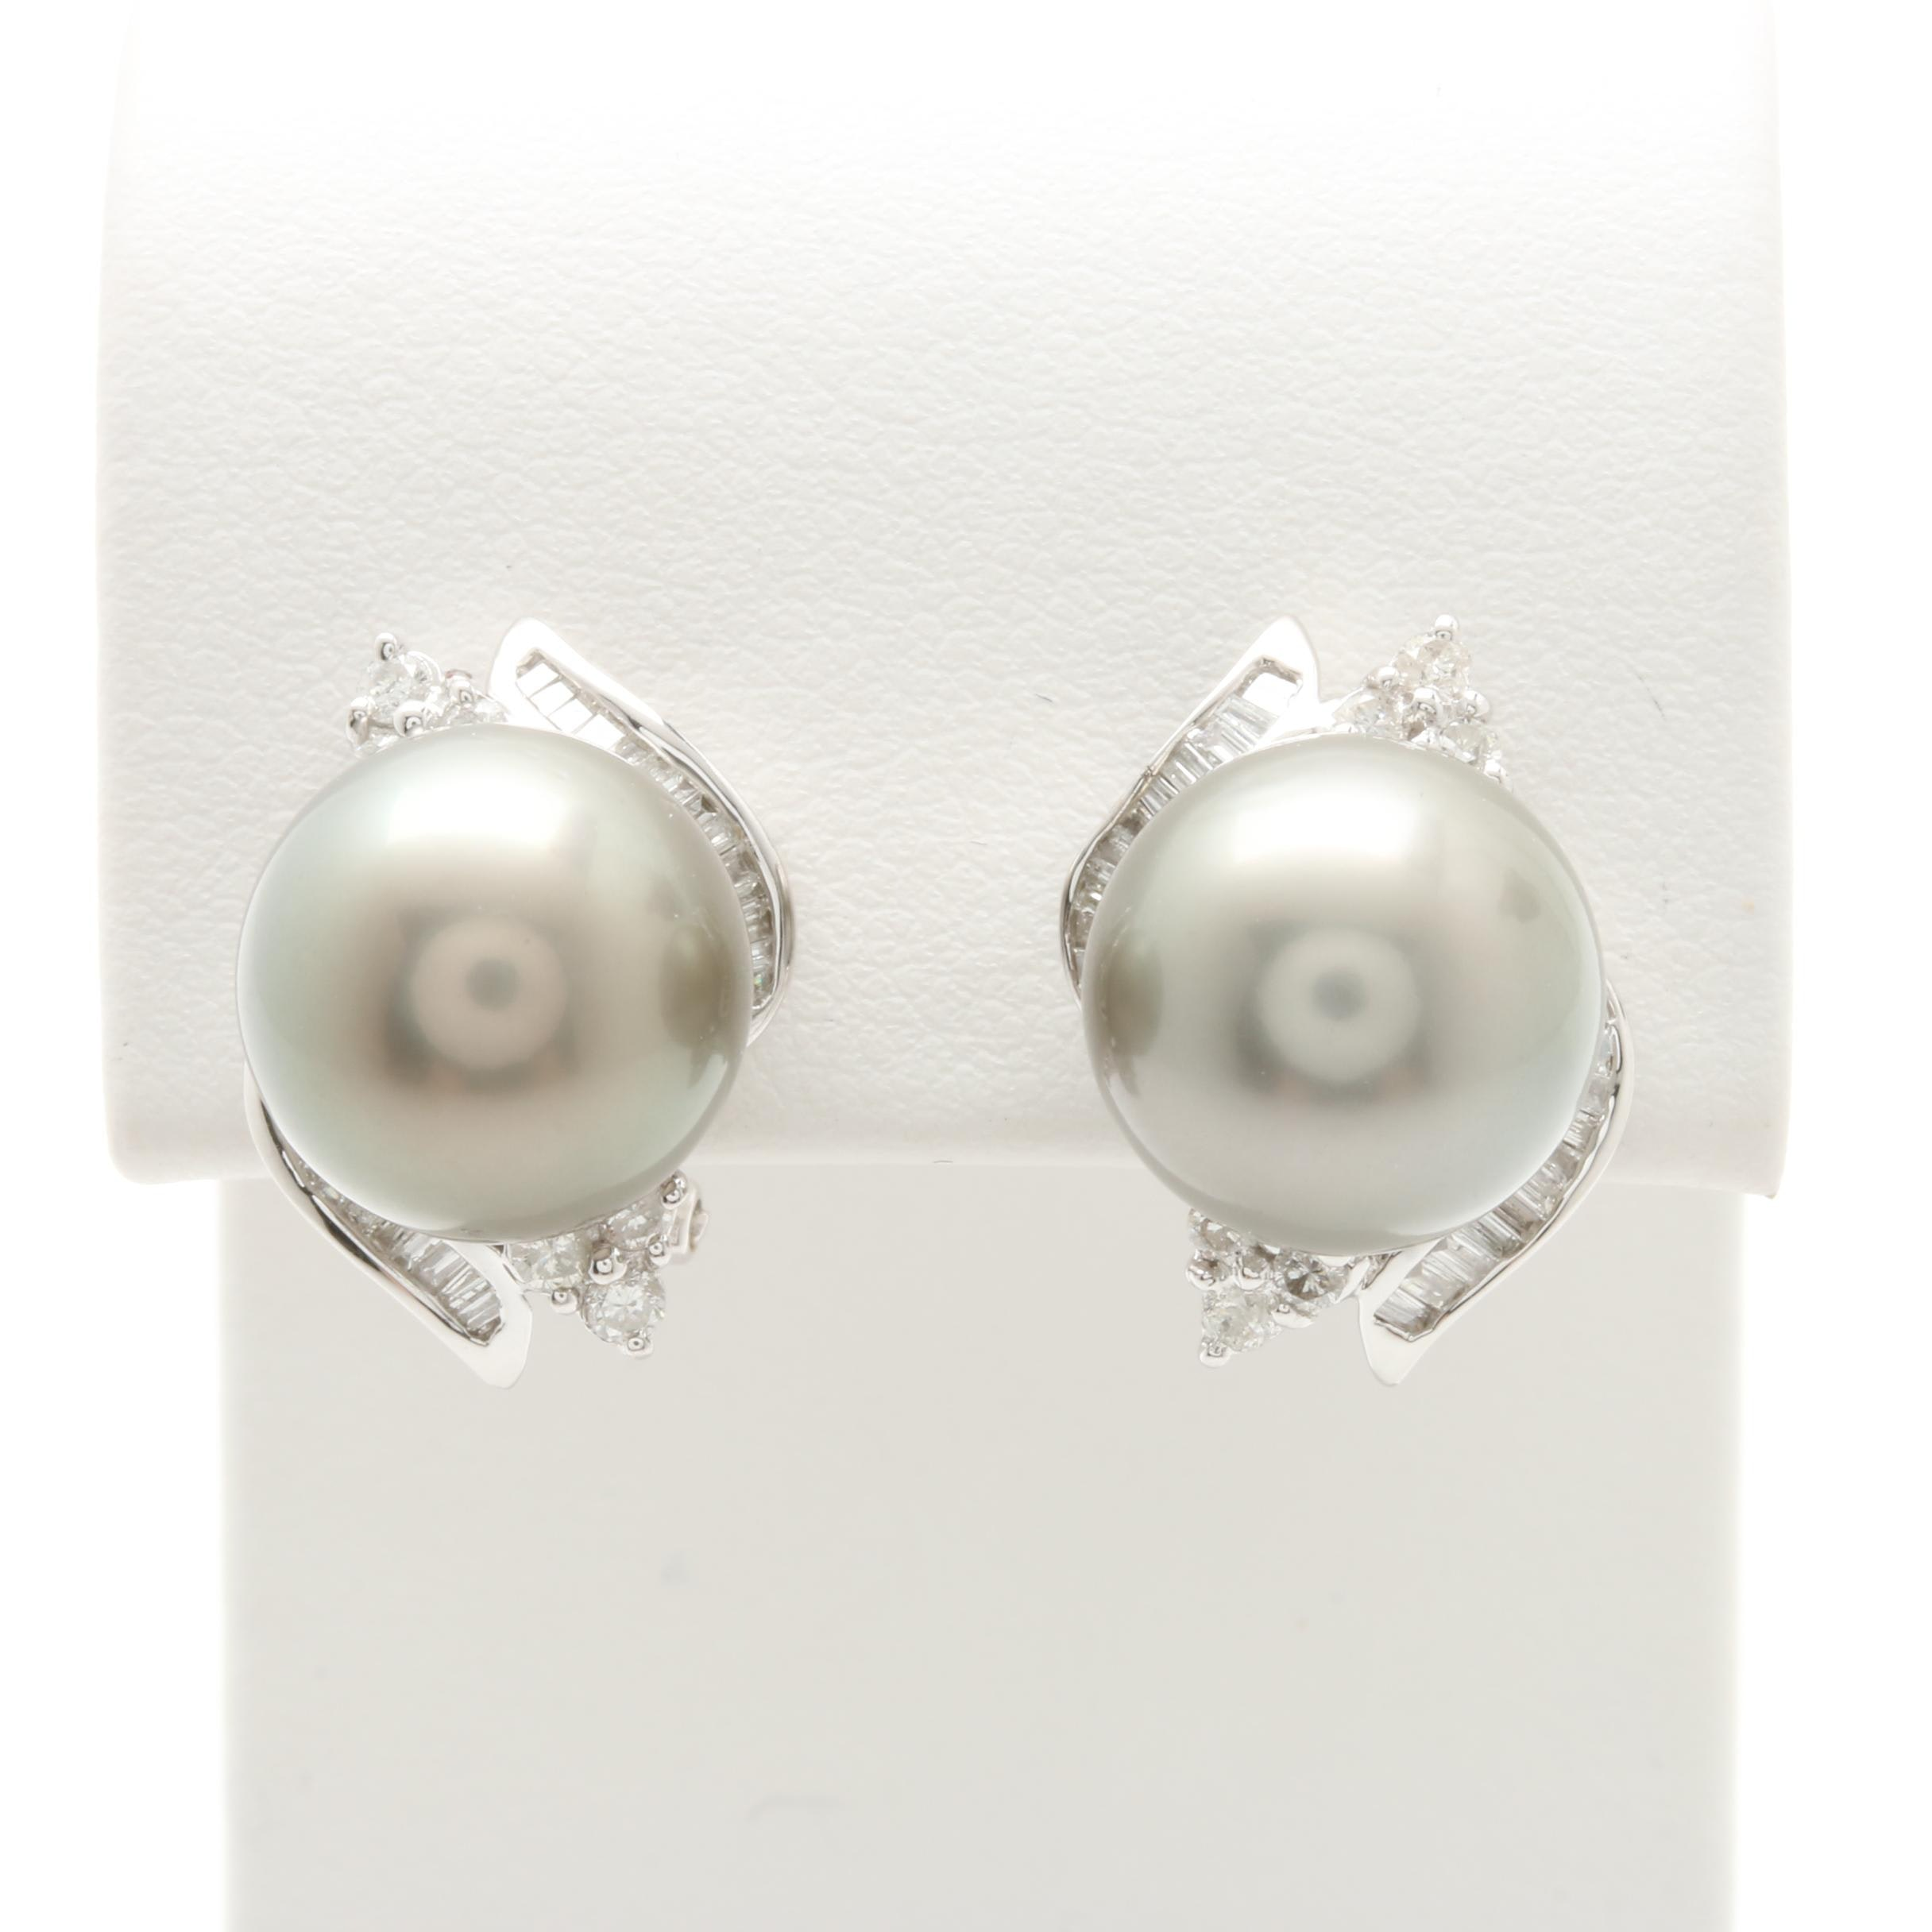 14K White Gold Cultured Pearl and Diamond Stud Earrings With 10K Gold Findings